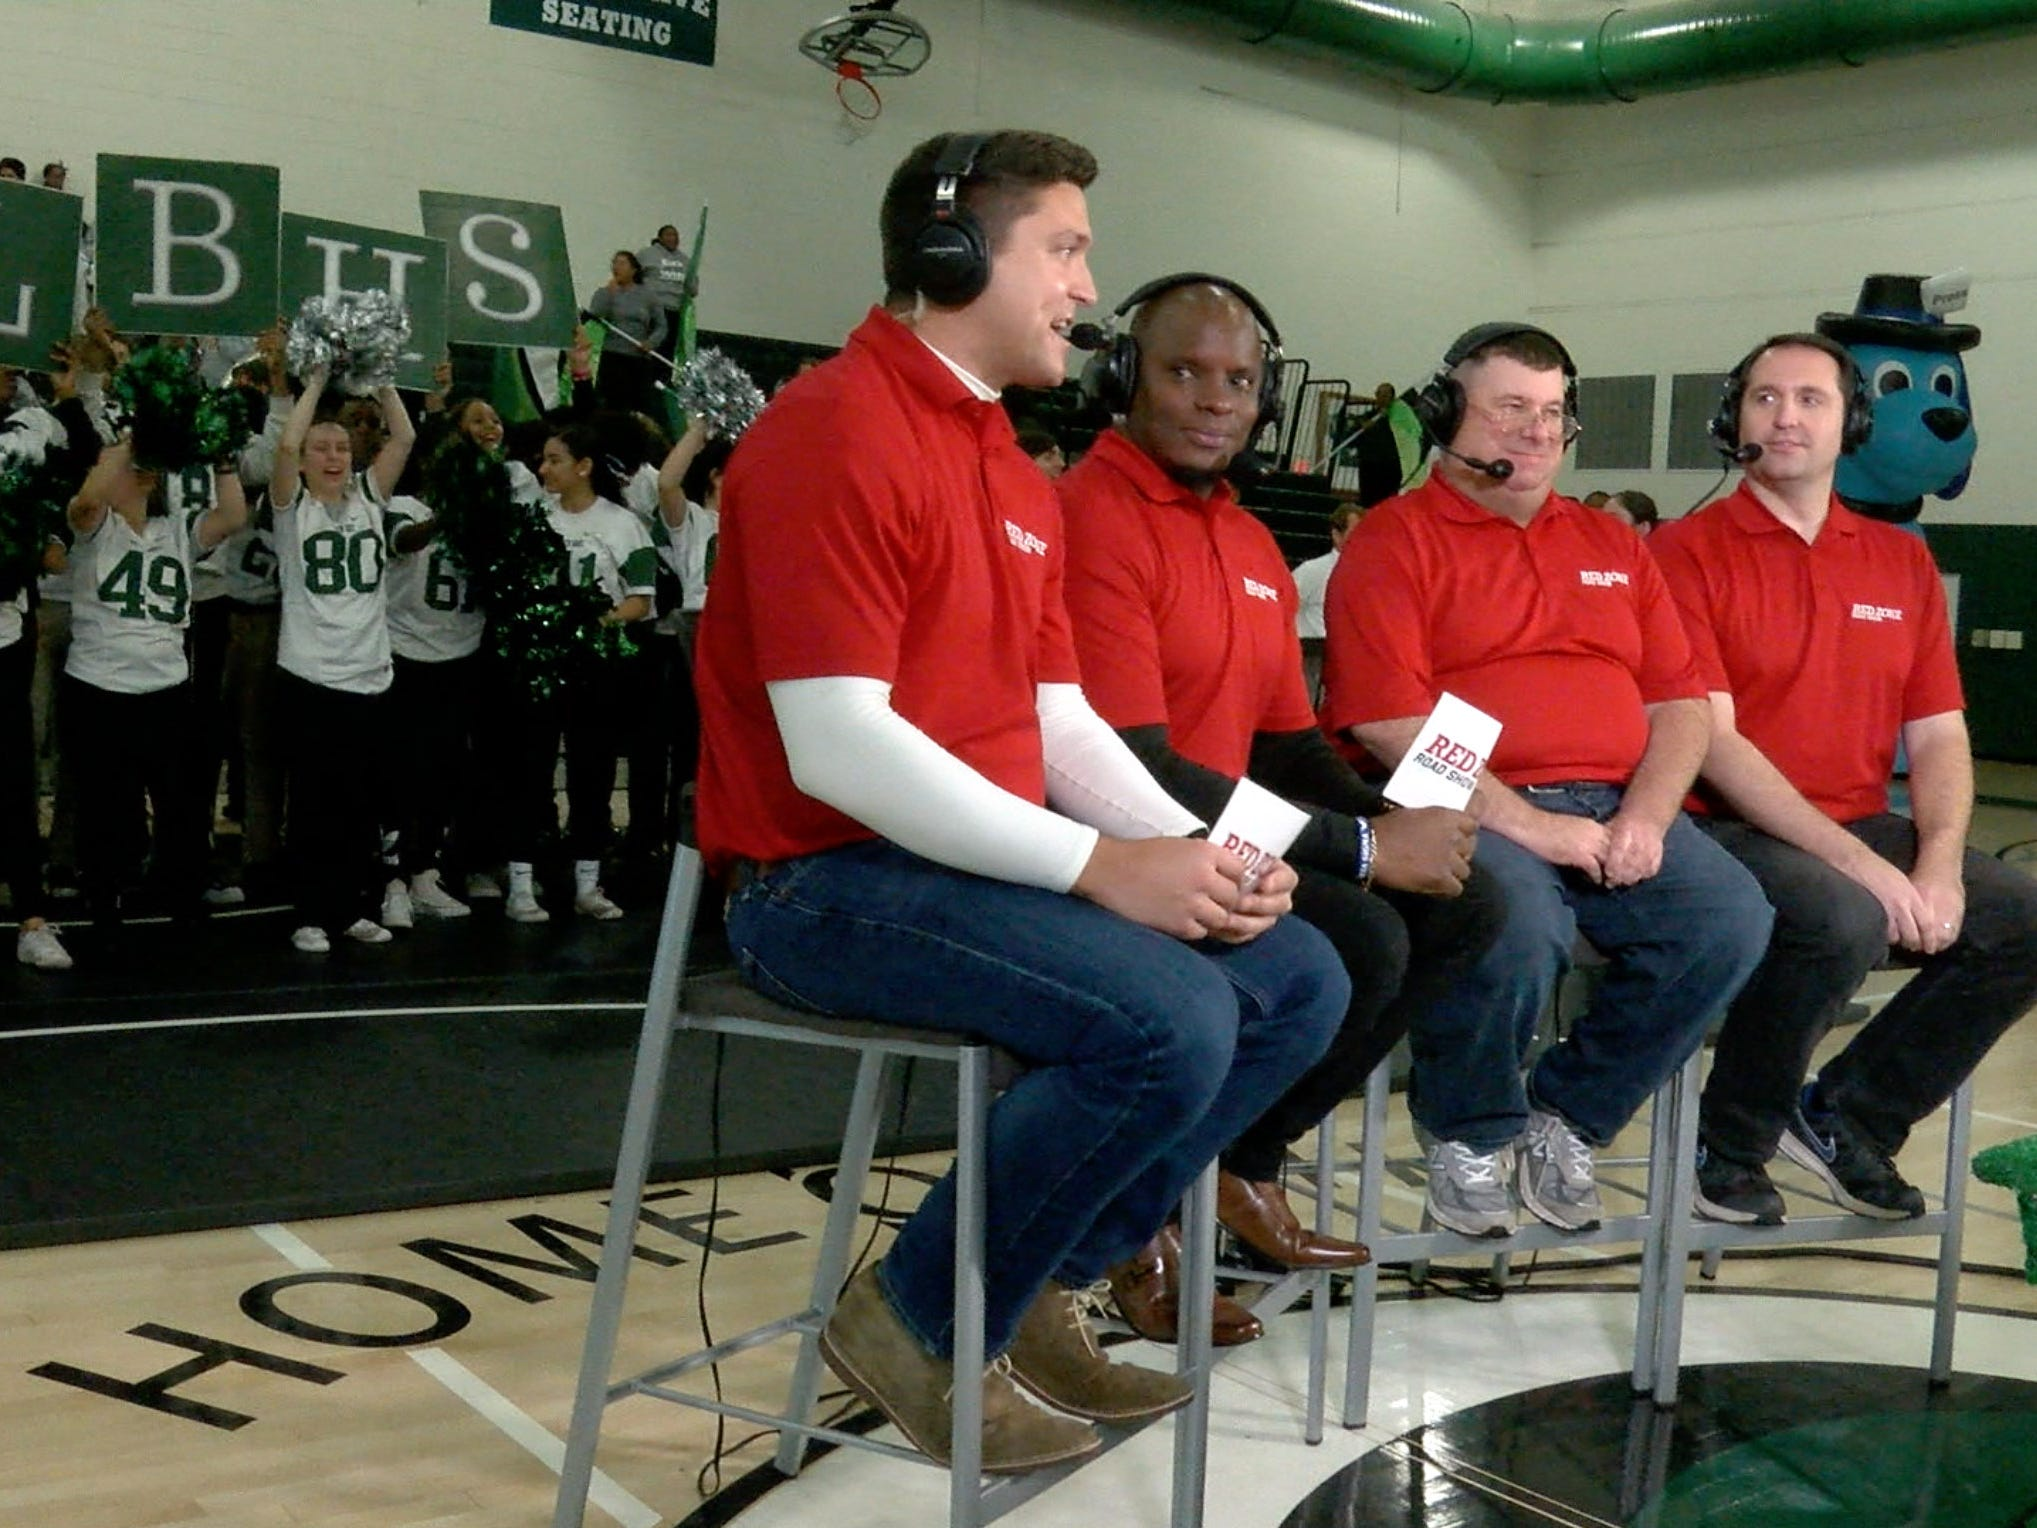 The Red Zone Road crew (l-r); Ryan Ross, Chris Melvin, Steve Falk and Greg Tartaglia; are shown during the show taping at Long Branch High School Monday, November 5, 2018.